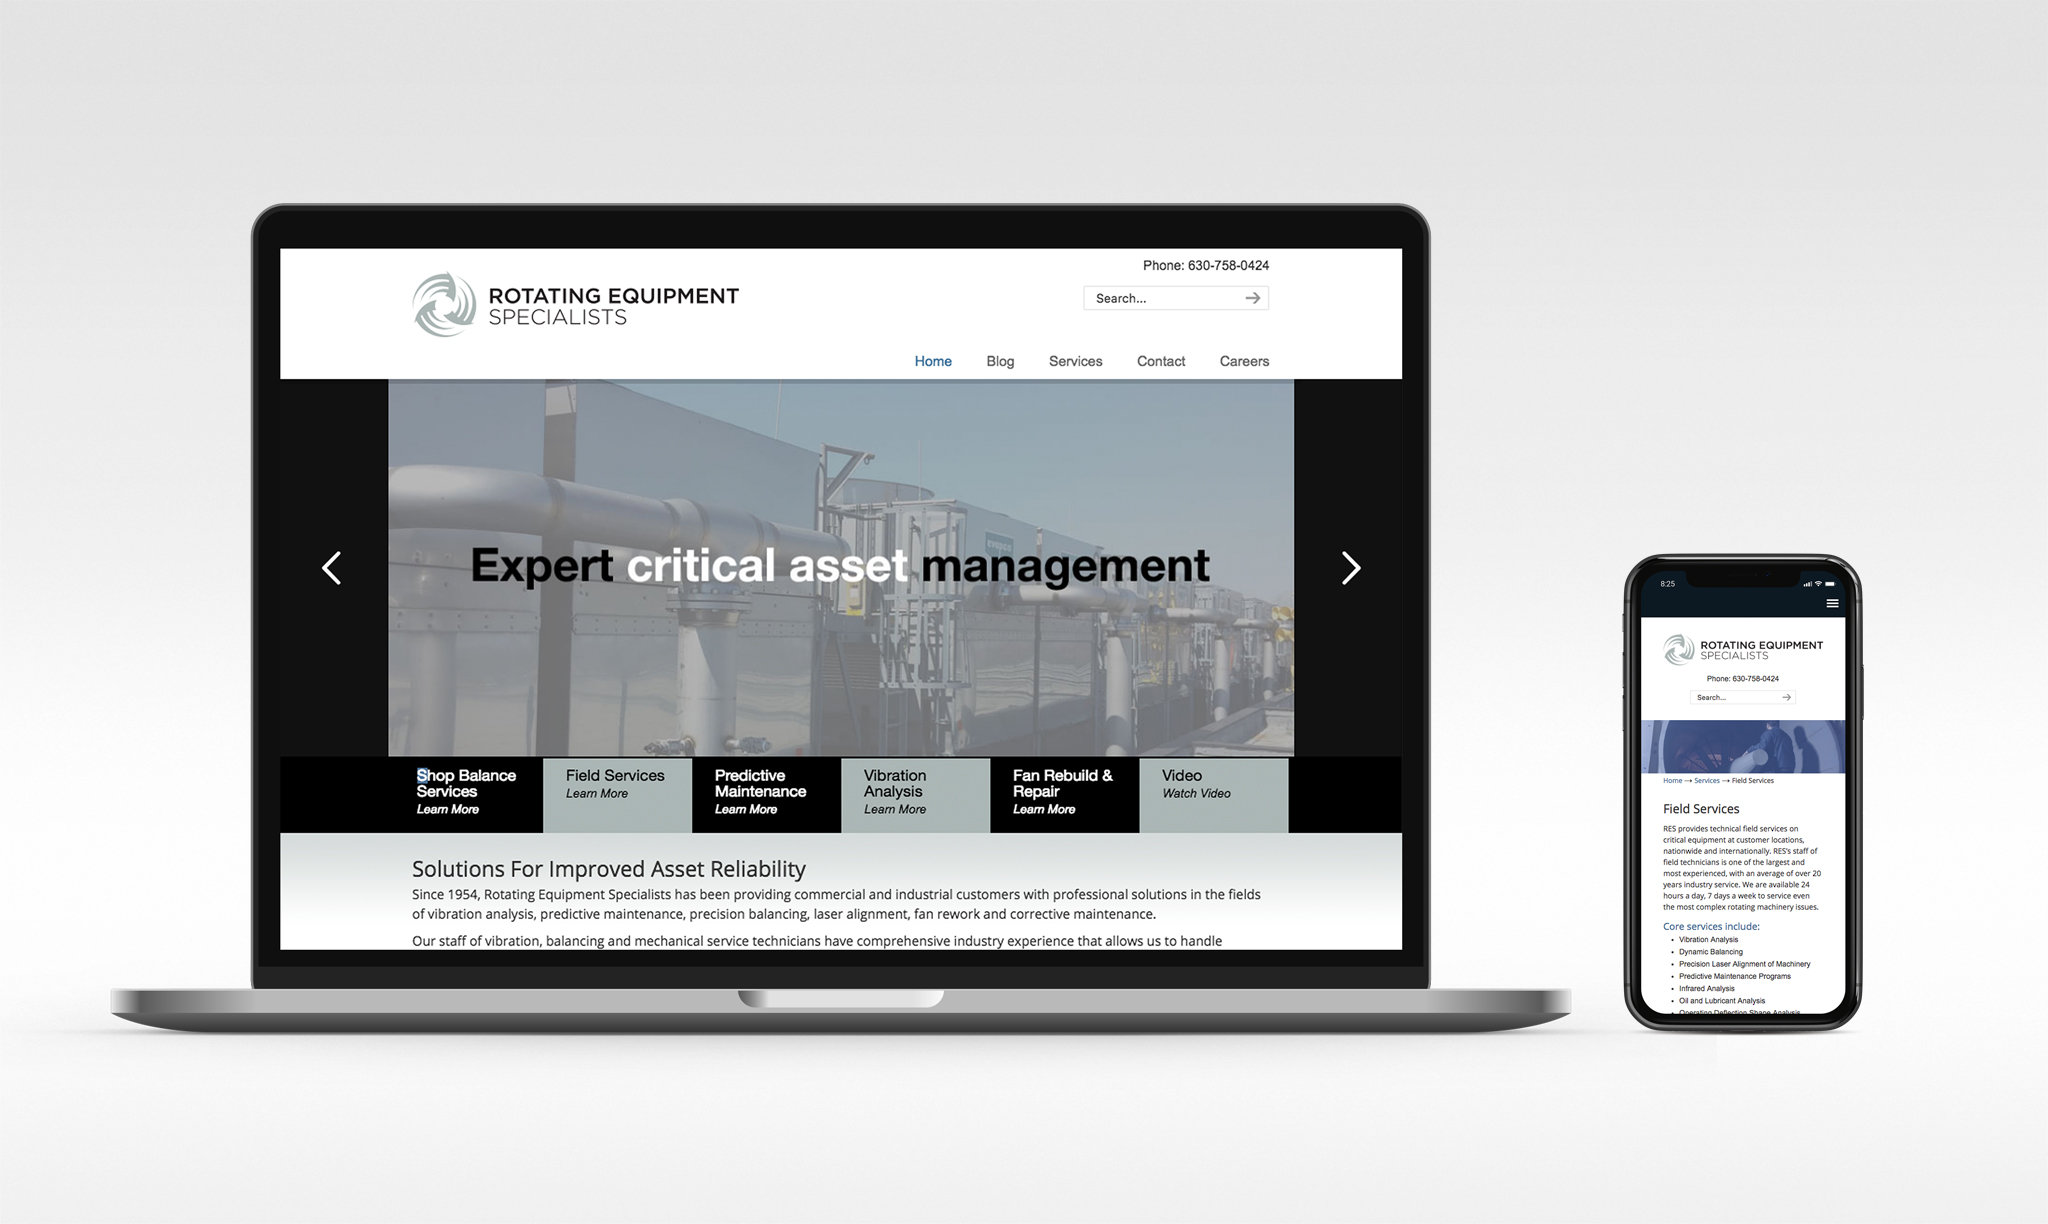 Rotating Equipment Specialists Website